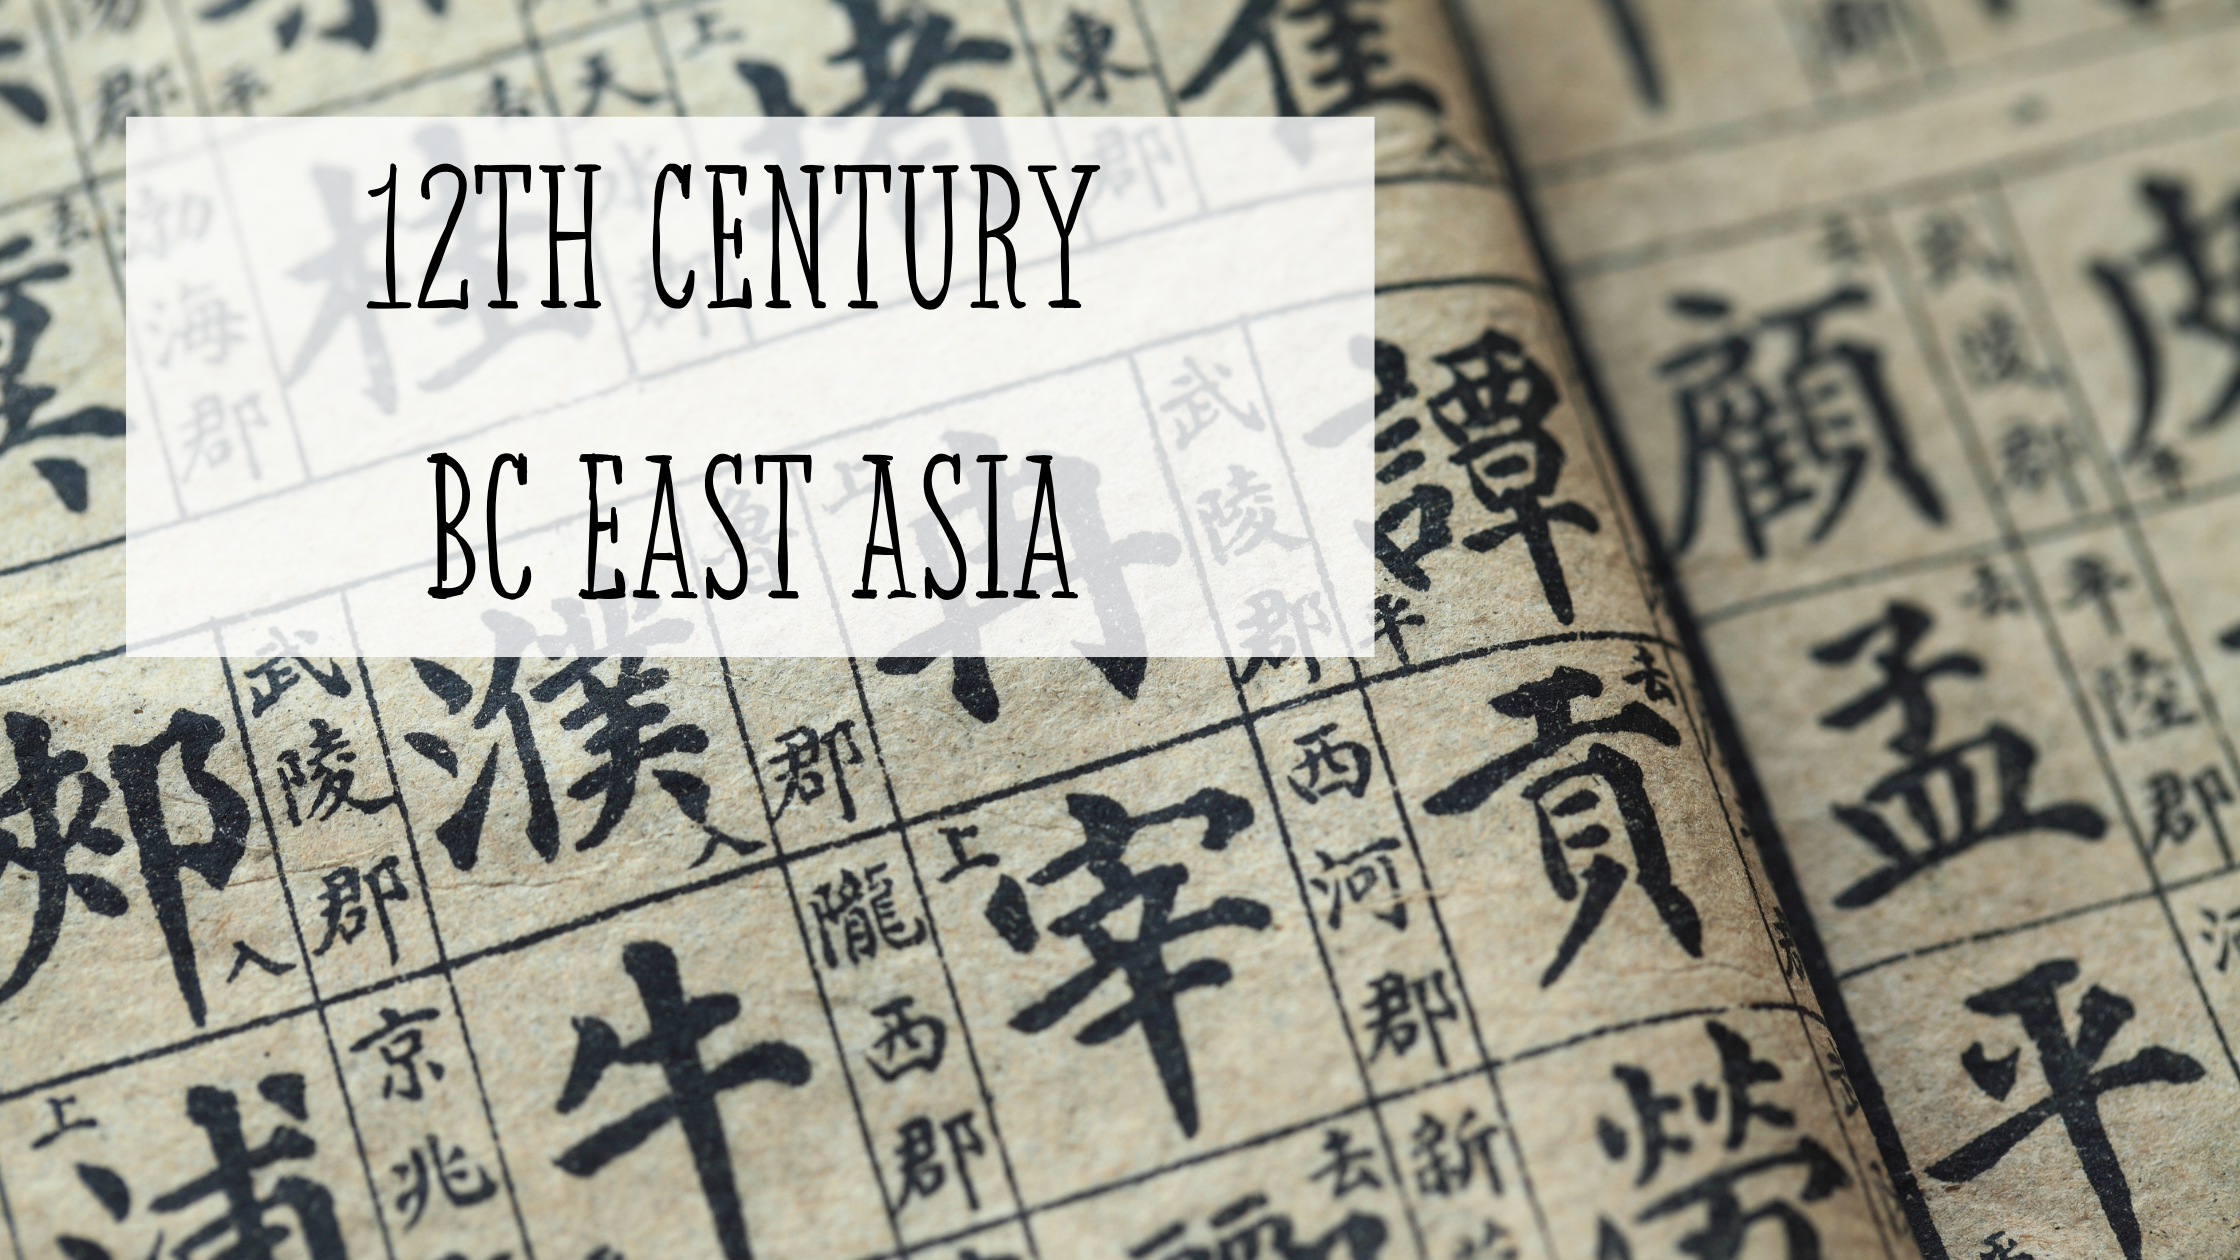 History of Black: 12th Century BC East Asia